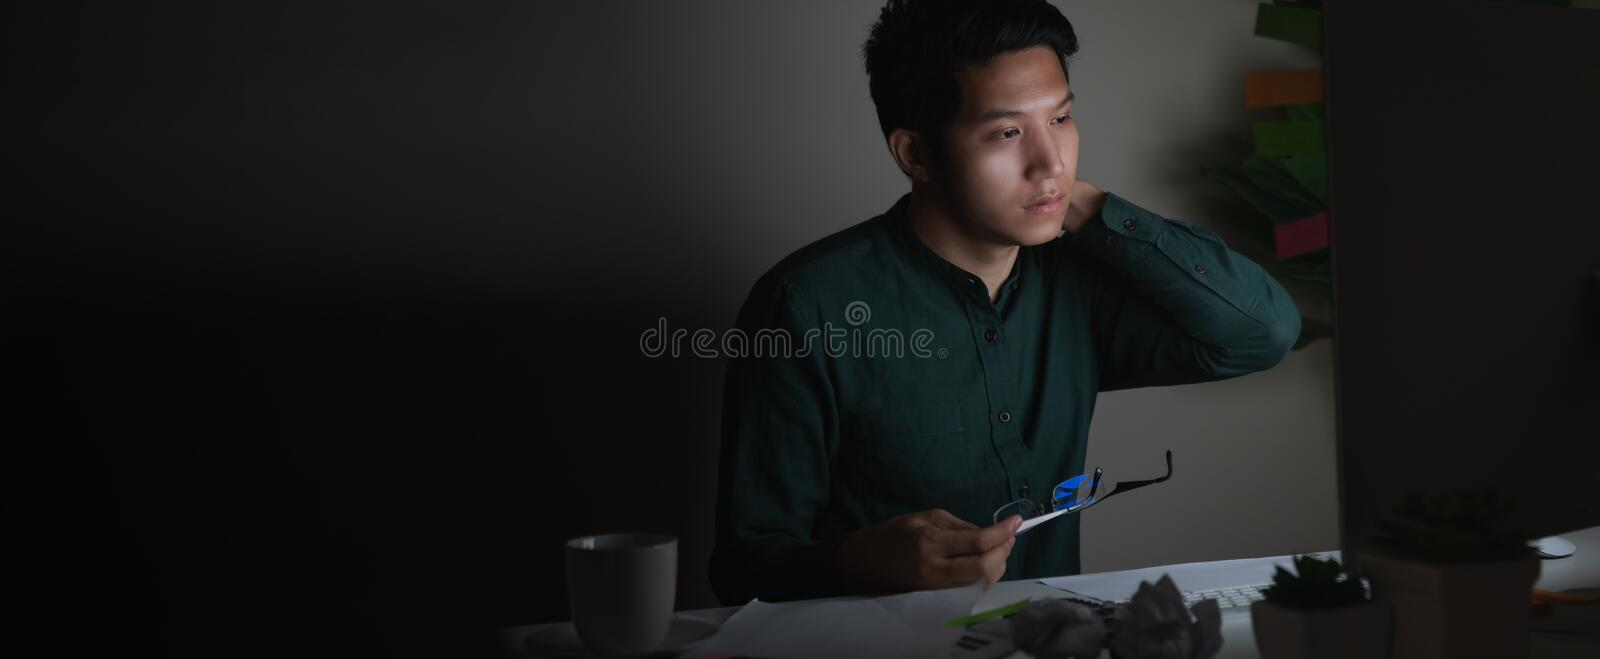 Attractive young asian man working late at night looking at laptop computer in dark home office desk feeling tired on work load or royalty free stock images